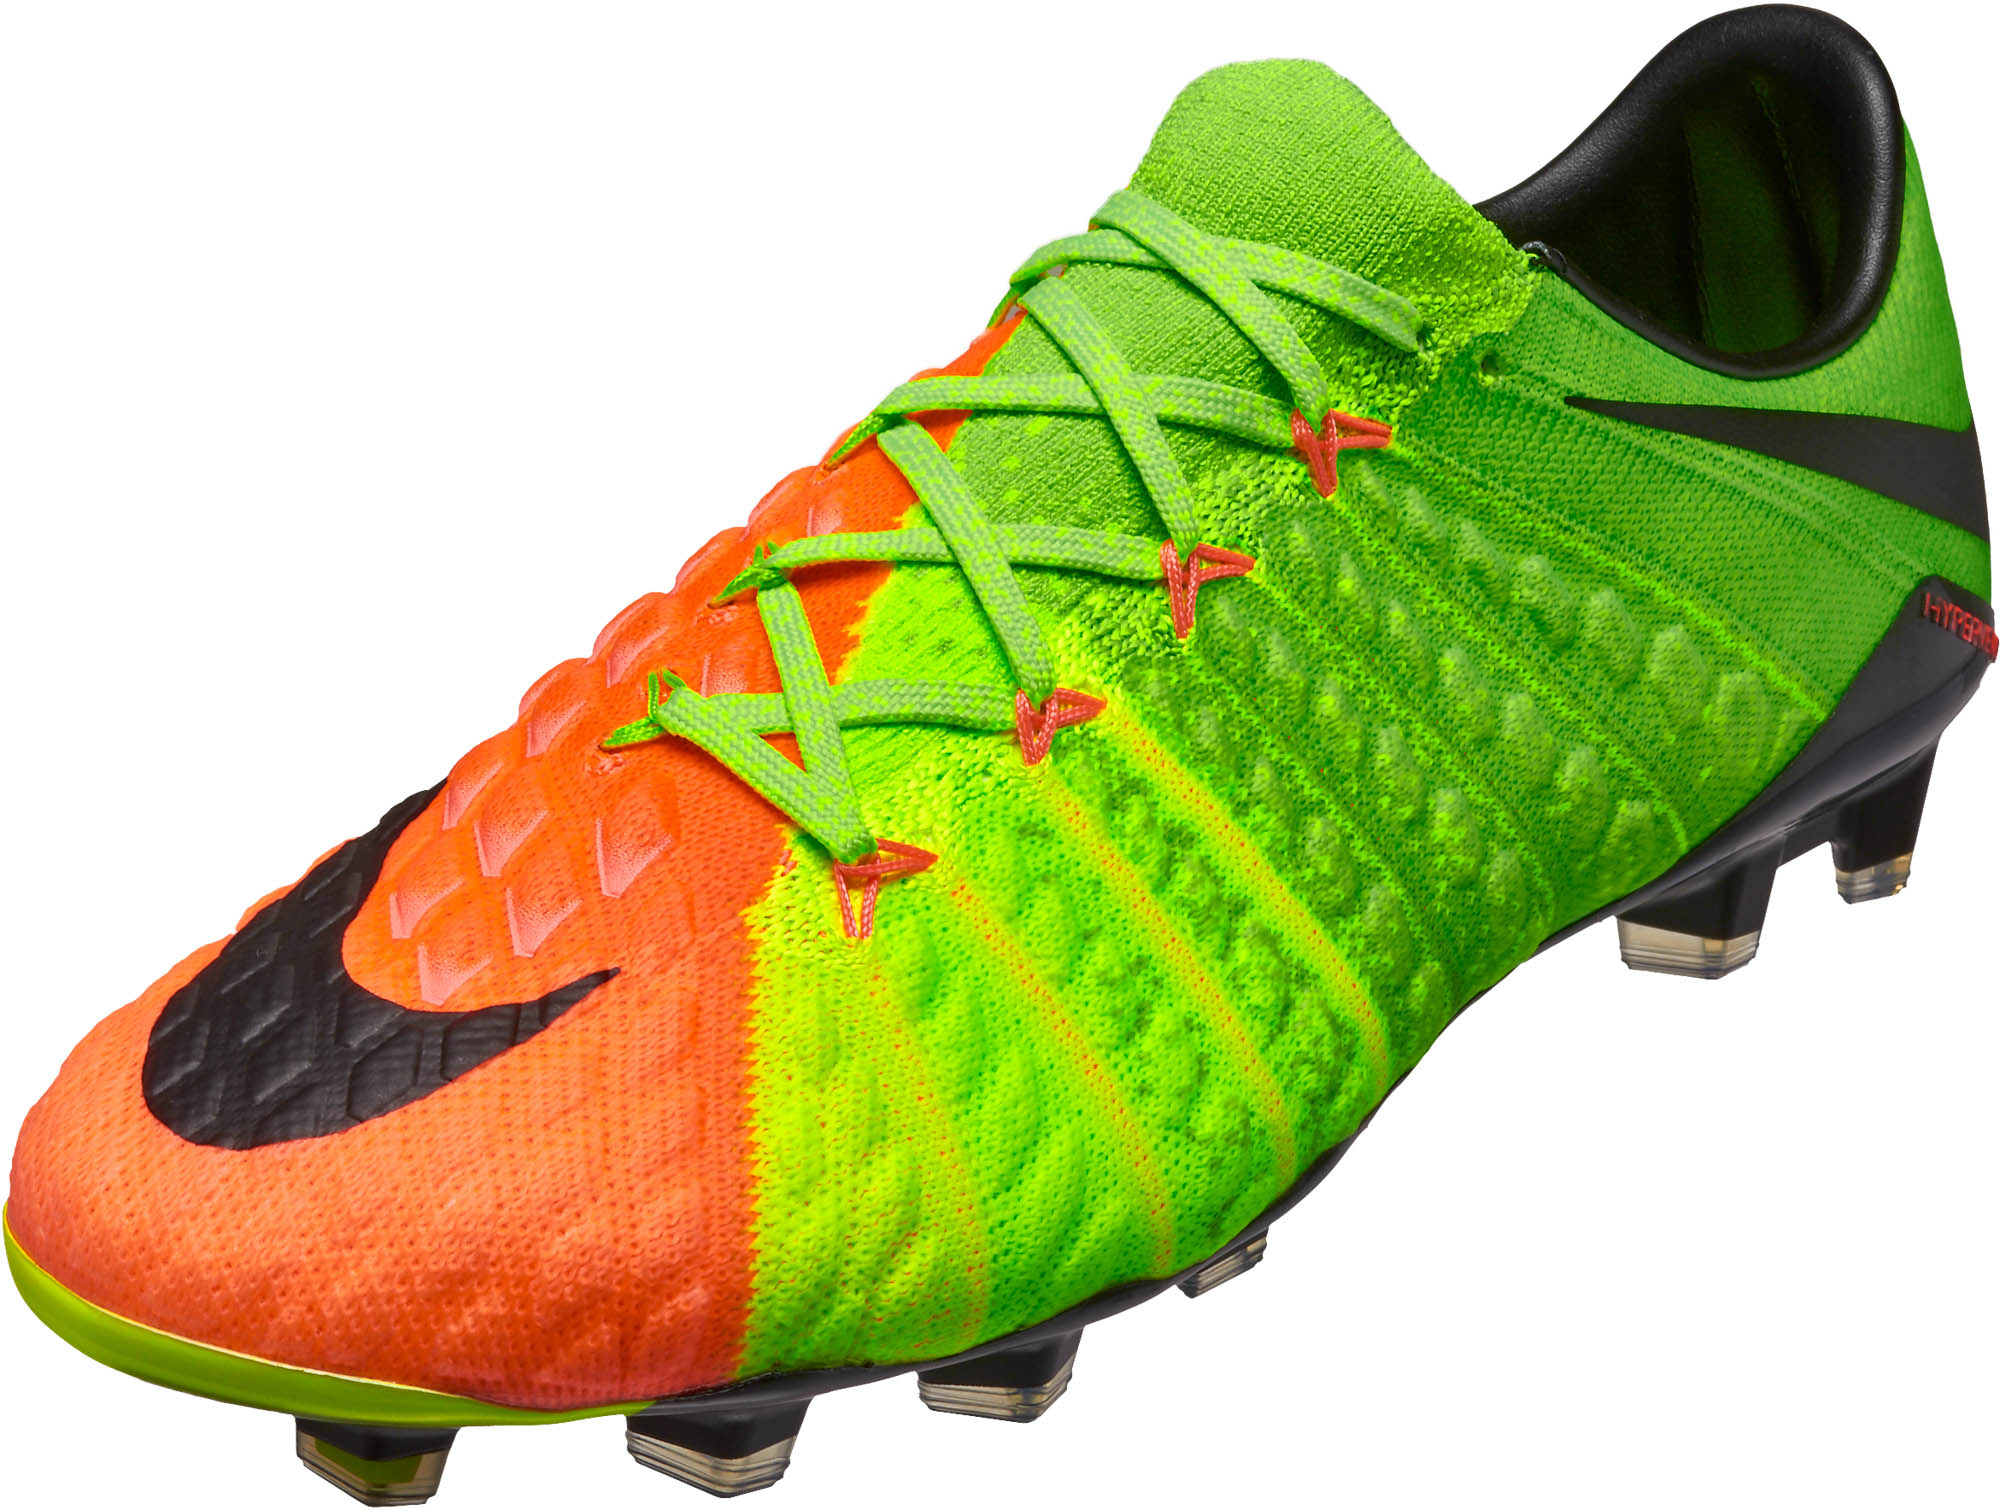 super popular 91dc6 1ab2f Nike Hypervenom Phantom III FG – Electric Green/Hyper Orange